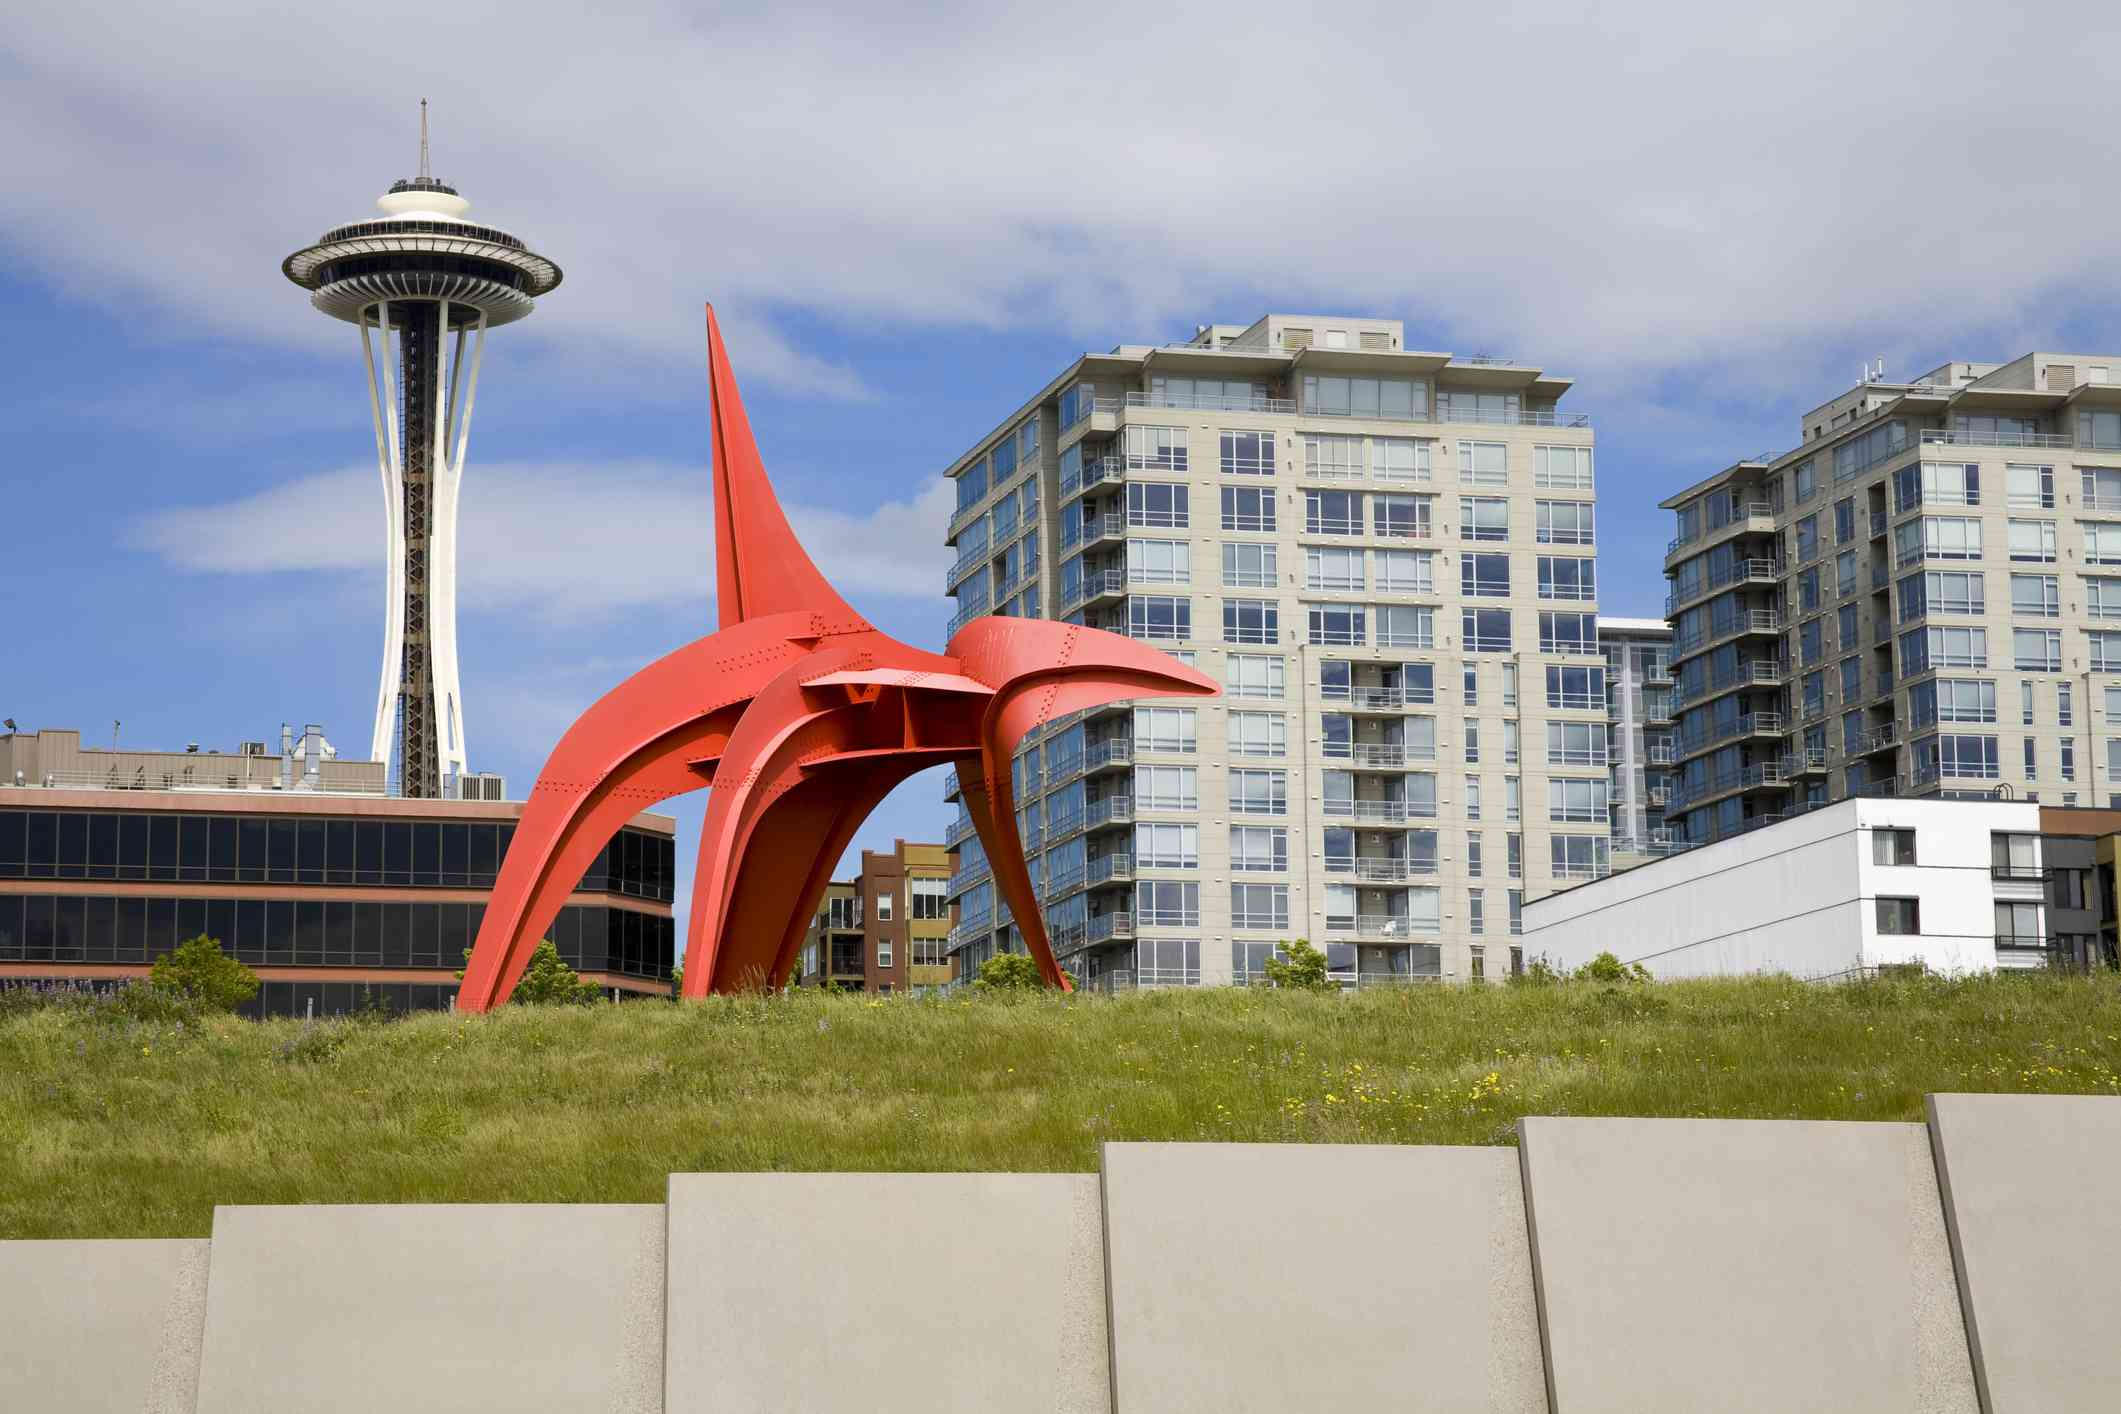 red, abstract sculpture on grass with the Seattle space needle in the background